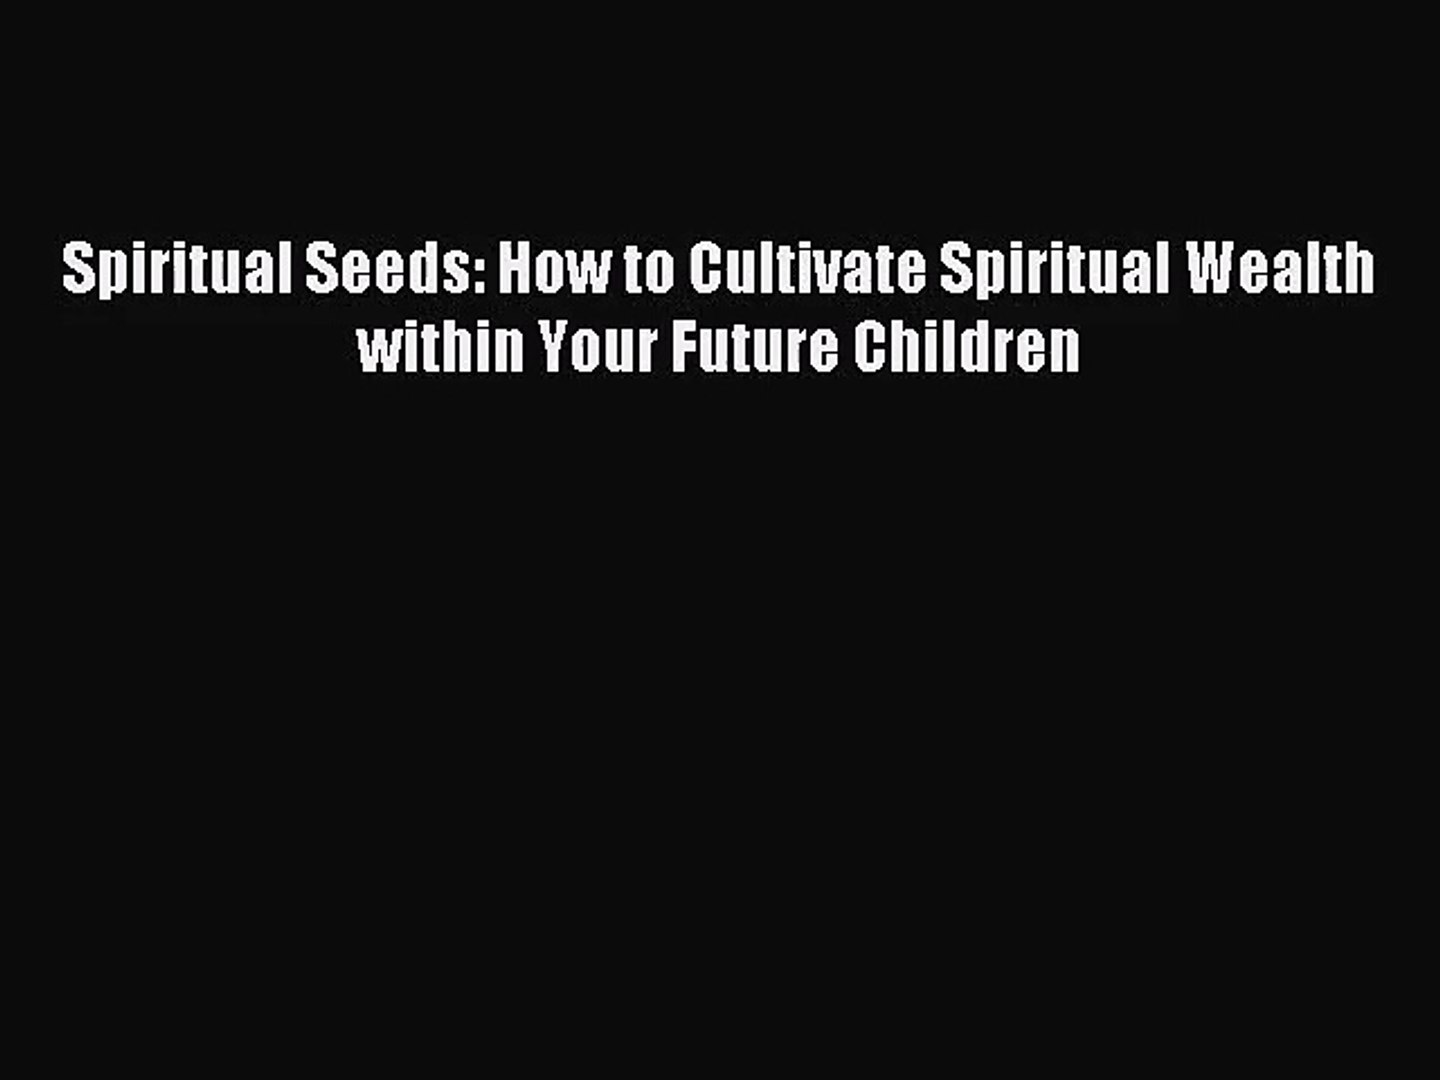 Spiritual Seeds: How to Cultivate Spiritual Wealth within Your Future Children [PDF] Online